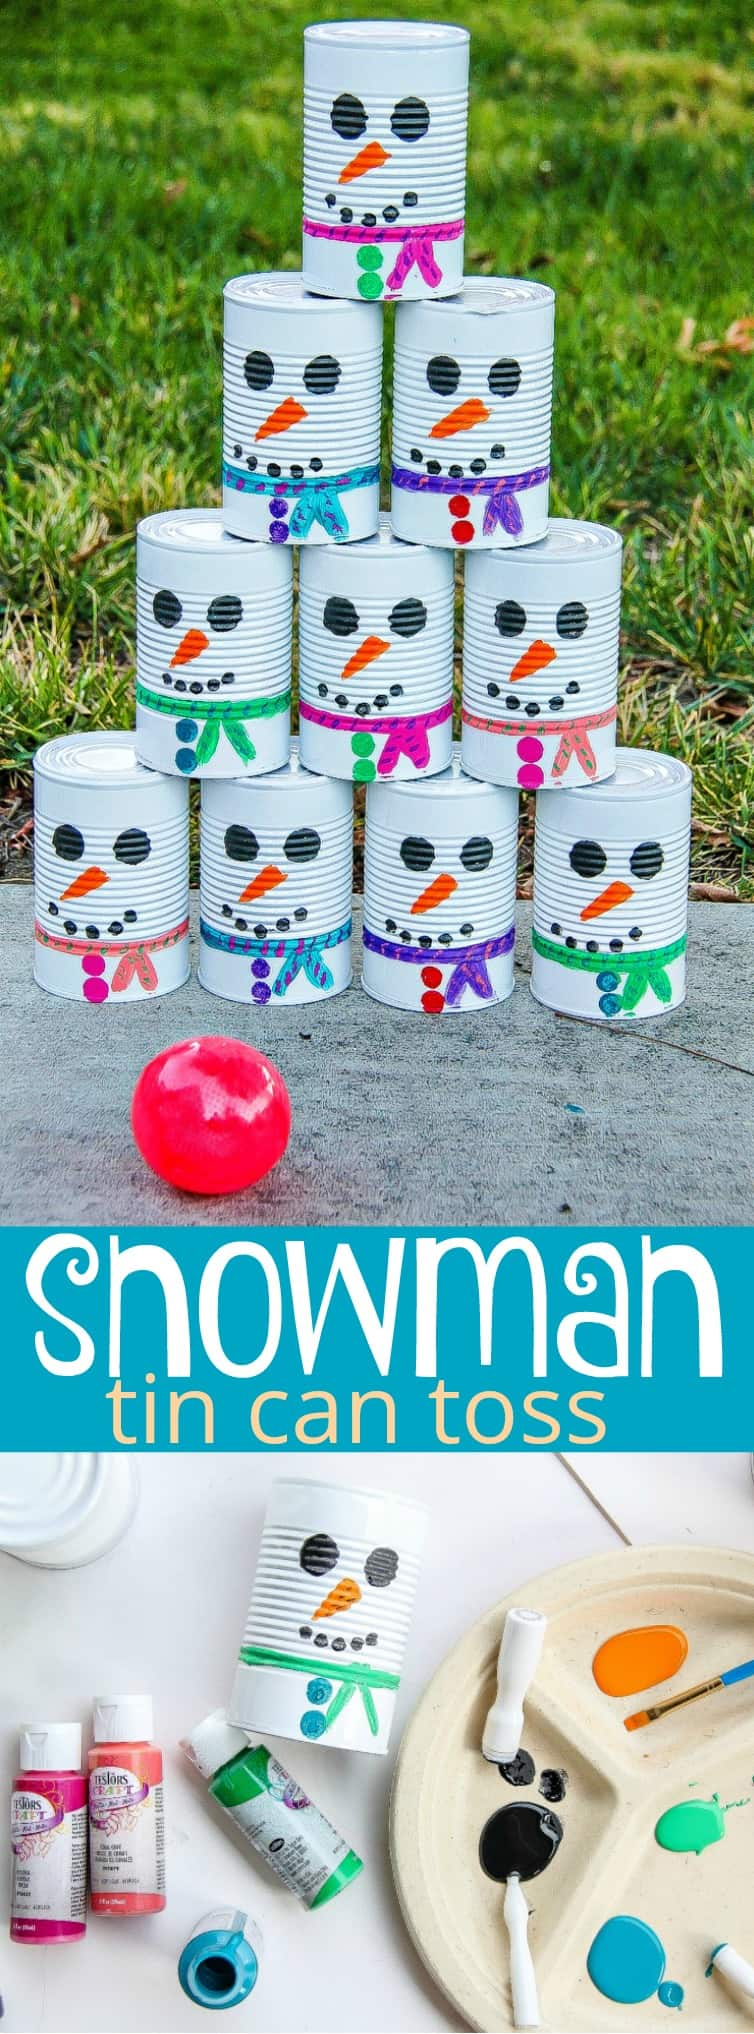 DIY Snowman Tin Can Toss Game